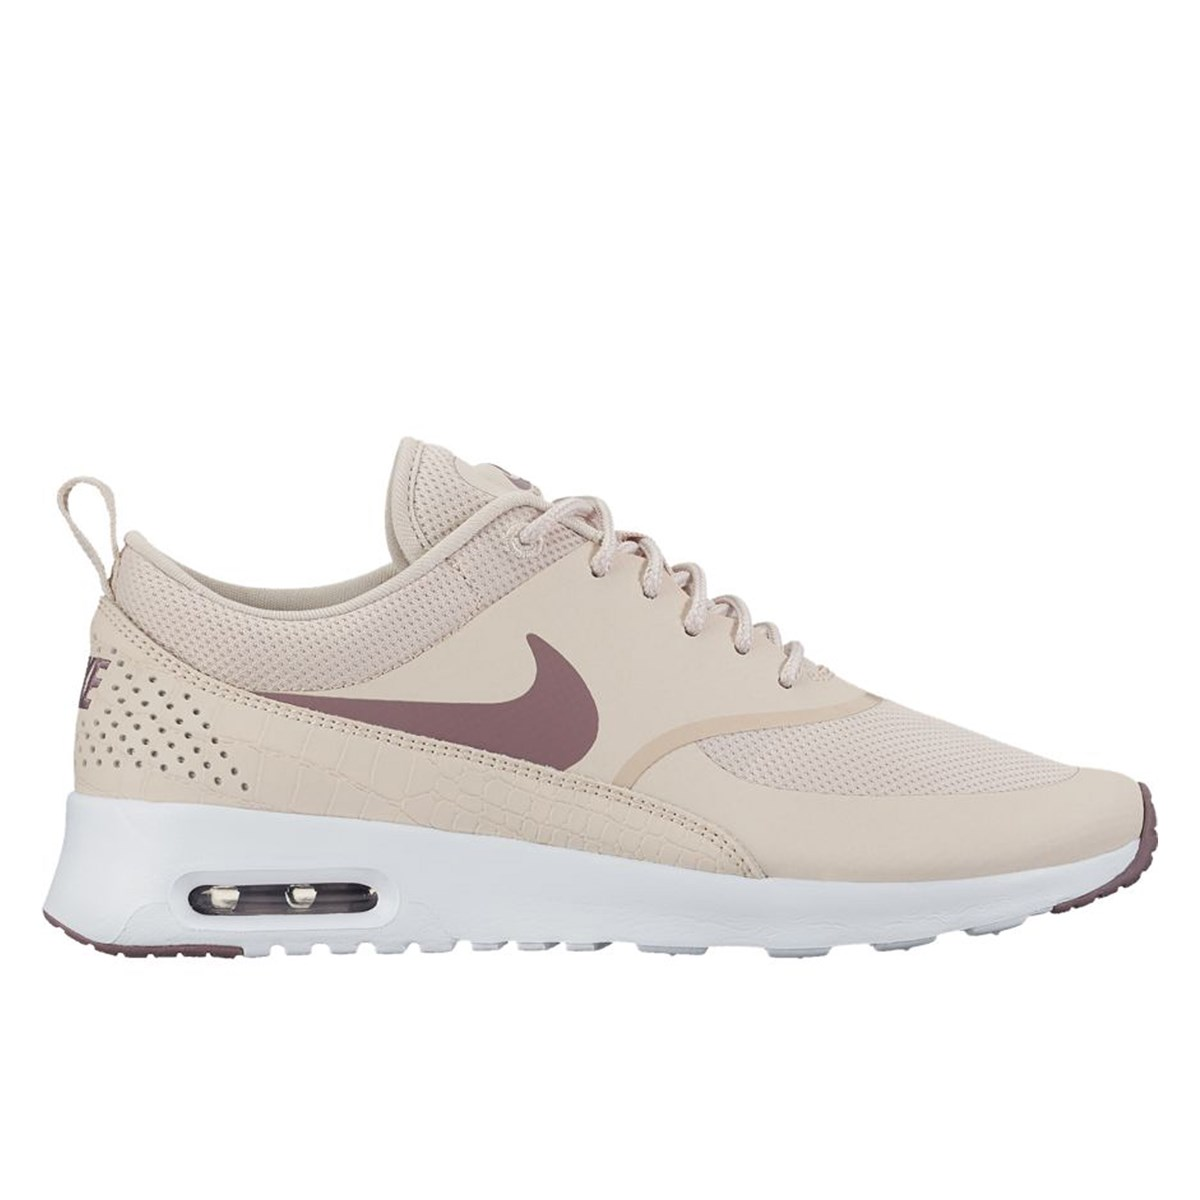 magasin en ligne 5305c fca0c Women's Air Max Thea Taupe Sneaker